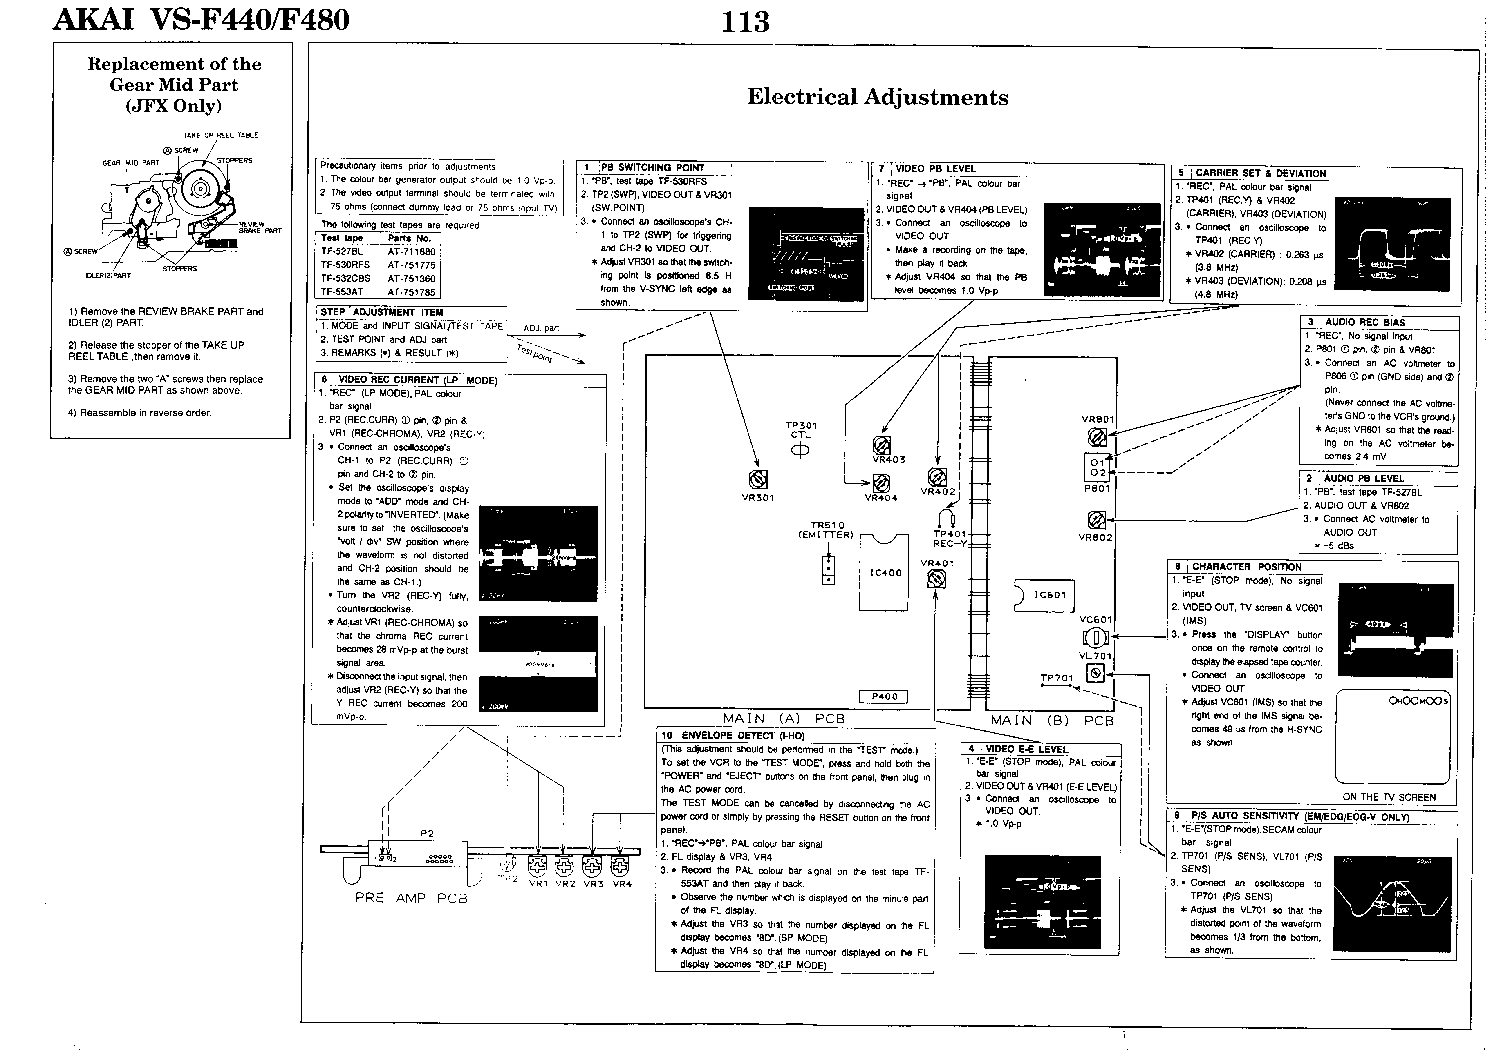 AKAI VS-F440 F480 ADJUSTMENTS SCH Service Manual download